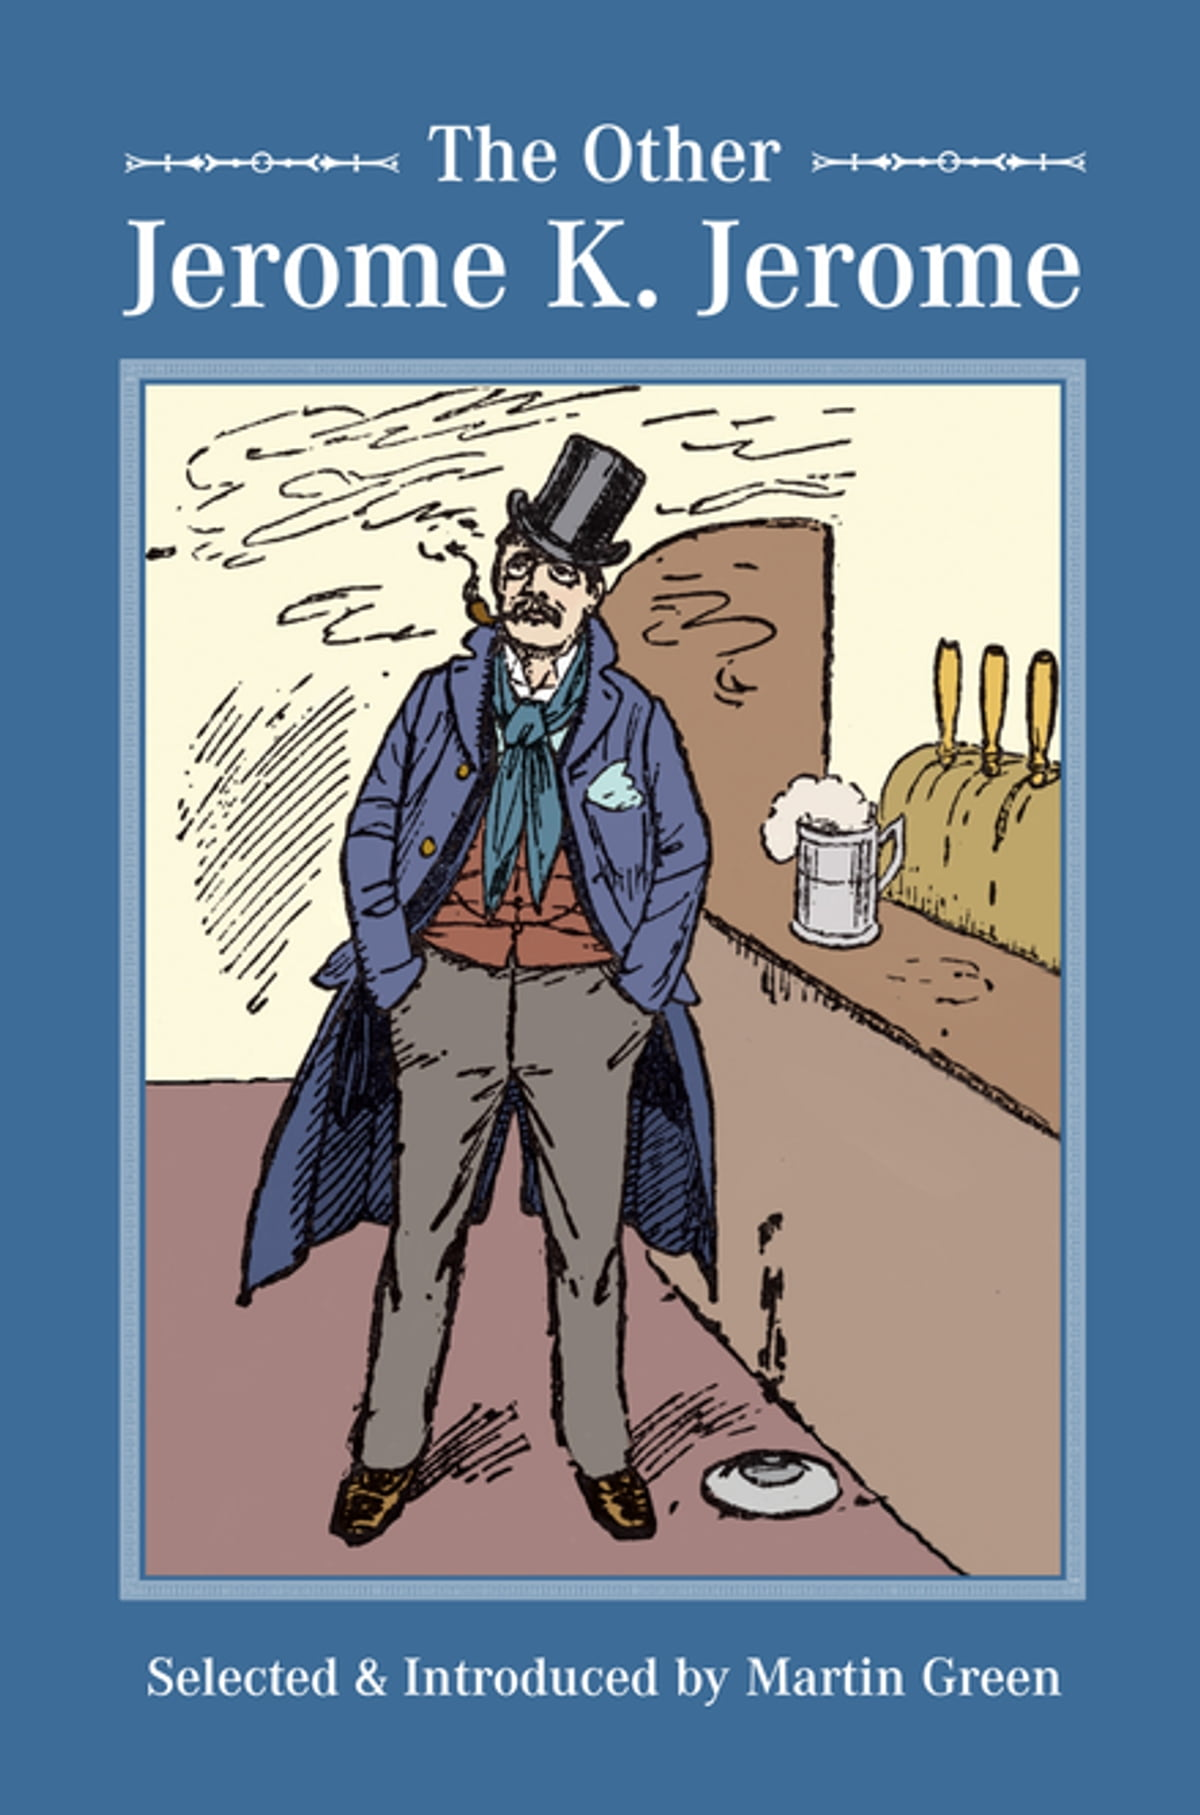 The Other Jerome K Jerome Ebook By Martin Green border=